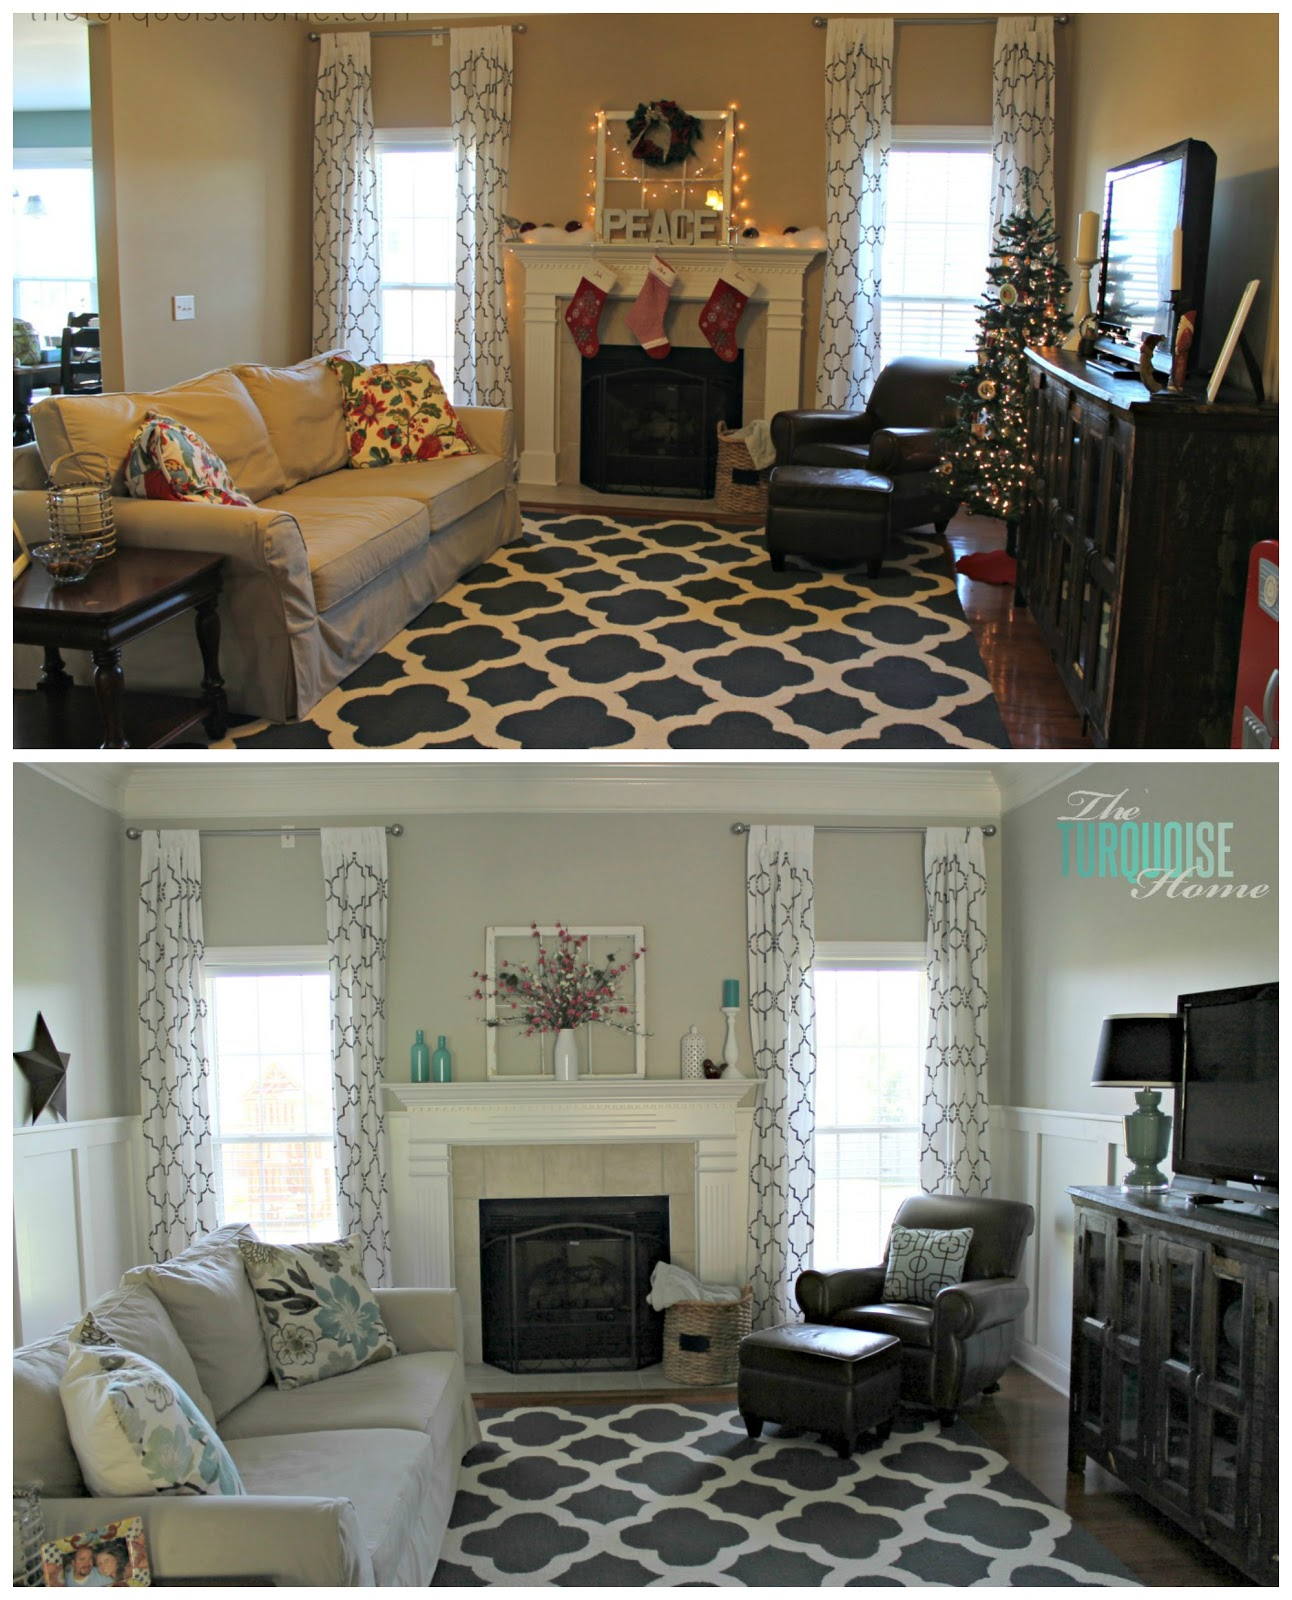 Living Room Makeover: Living Room Makeover - Part 7: Final Reveal